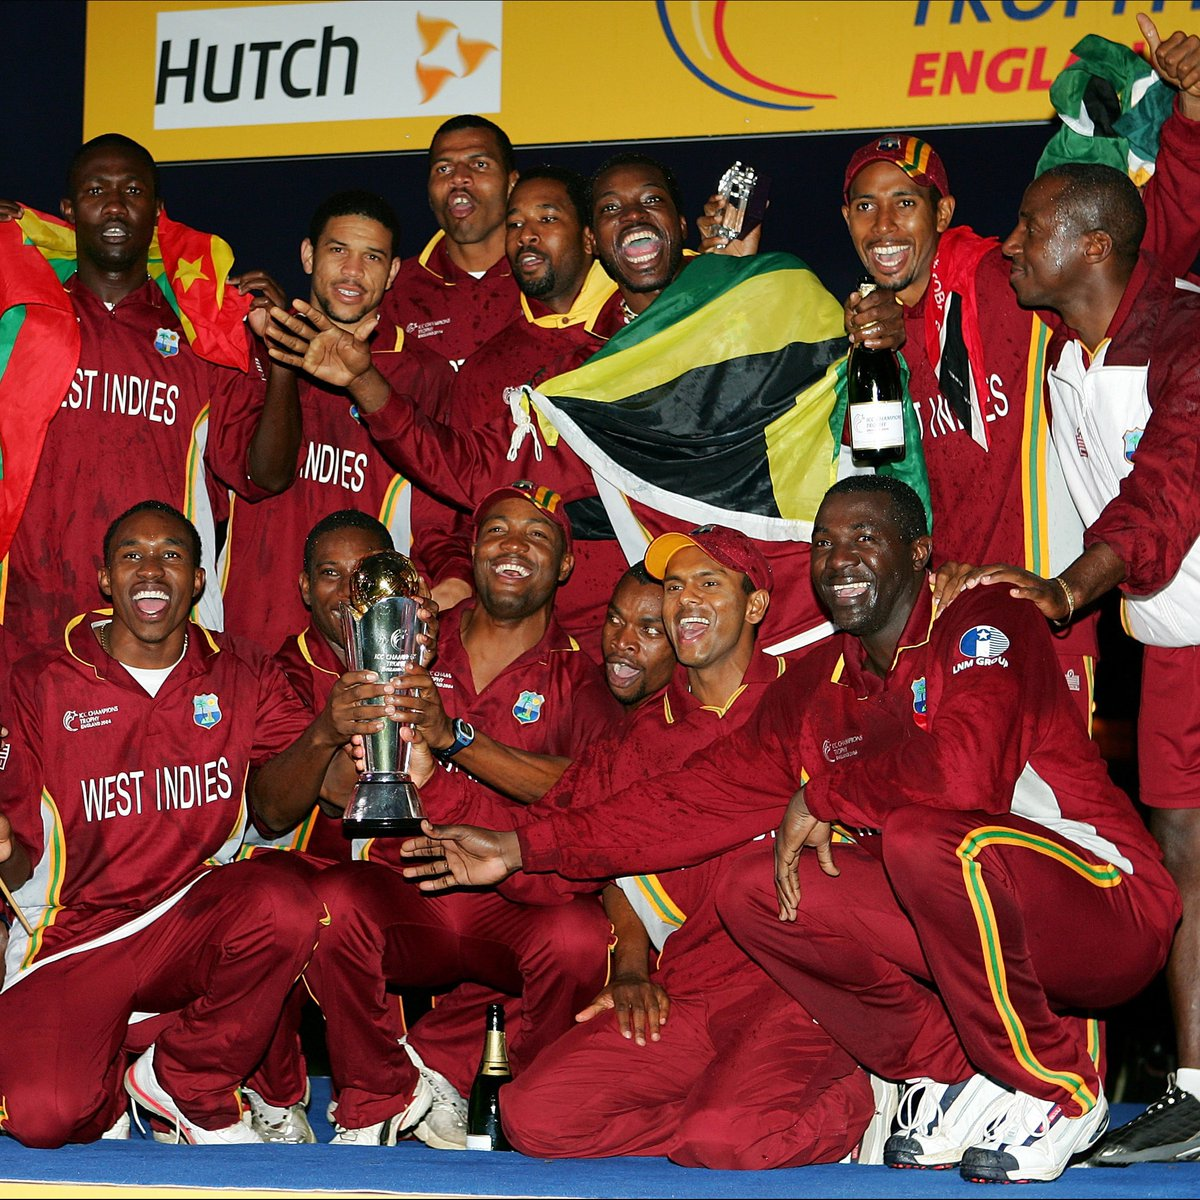 #OnThisDay in 2004 📅  @windiescricket were crowned the winners of the 2004 ICC Champions Trophy 👑  They beat England at The Oval with two wickets in hand 👏 https://t.co/jF2hiVL7n0